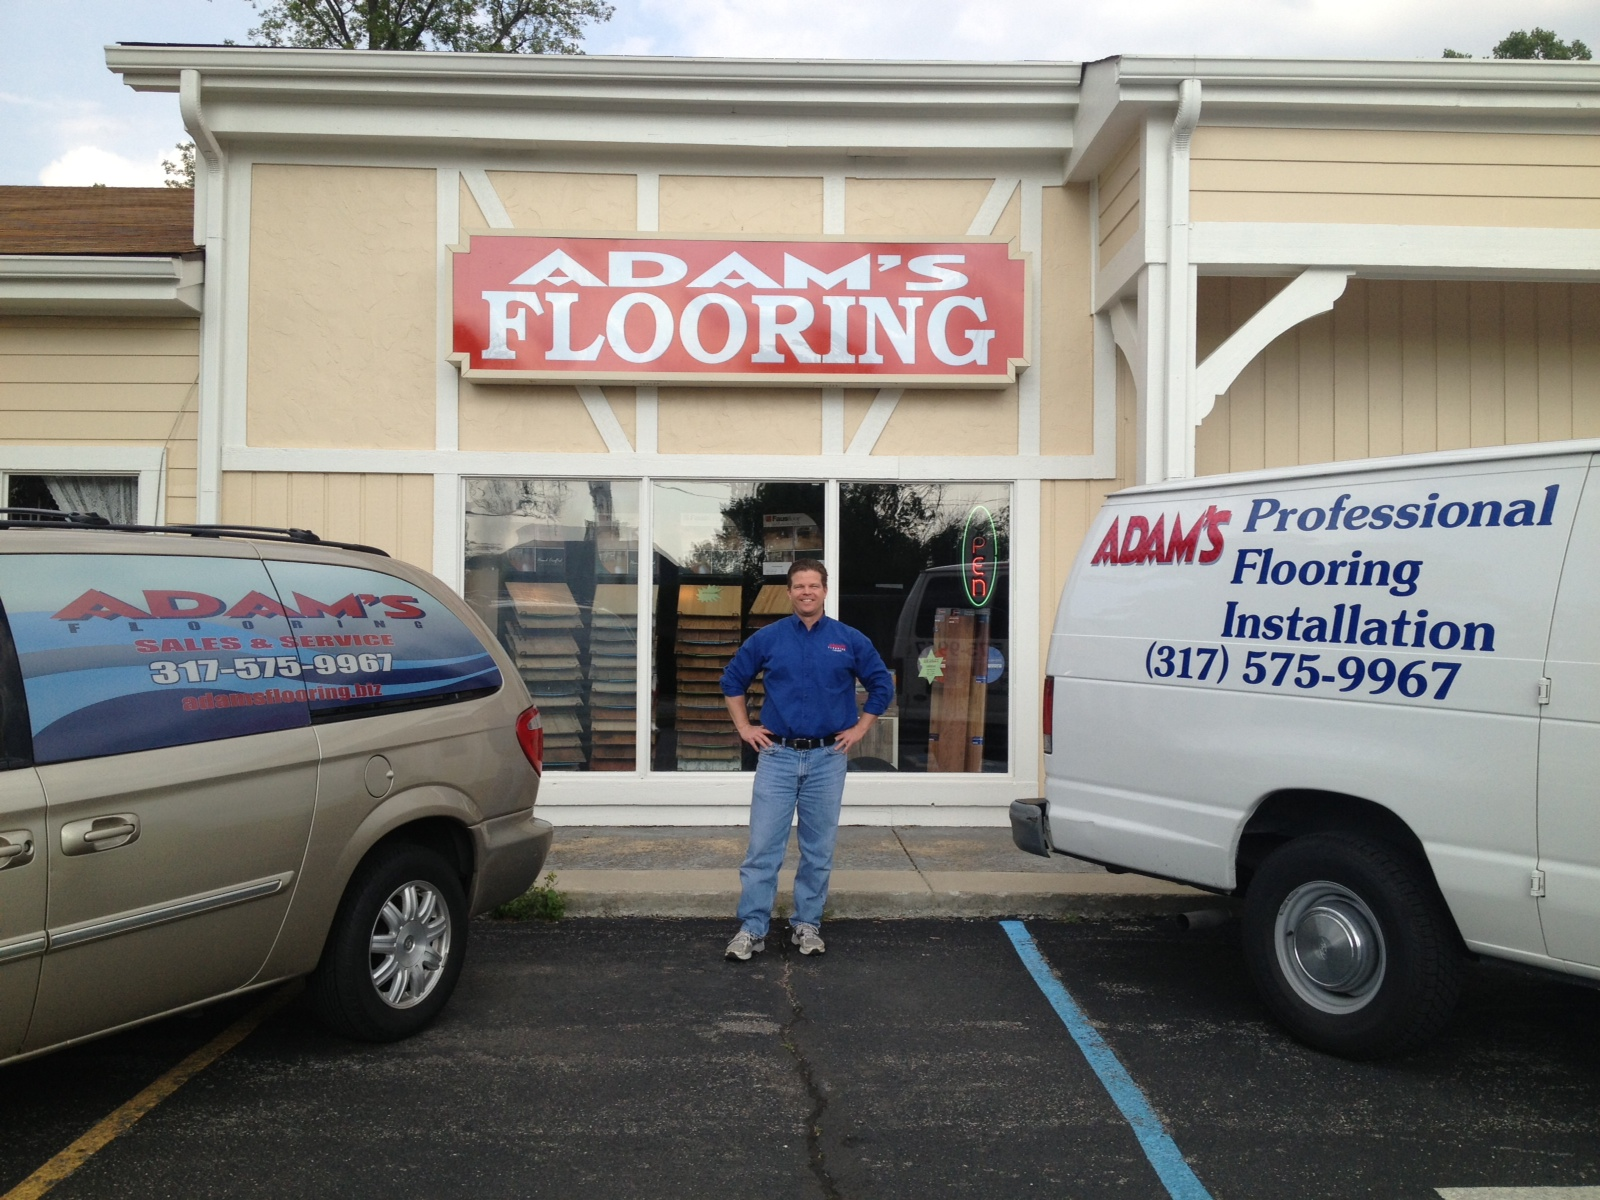 CIC-Adams flooring